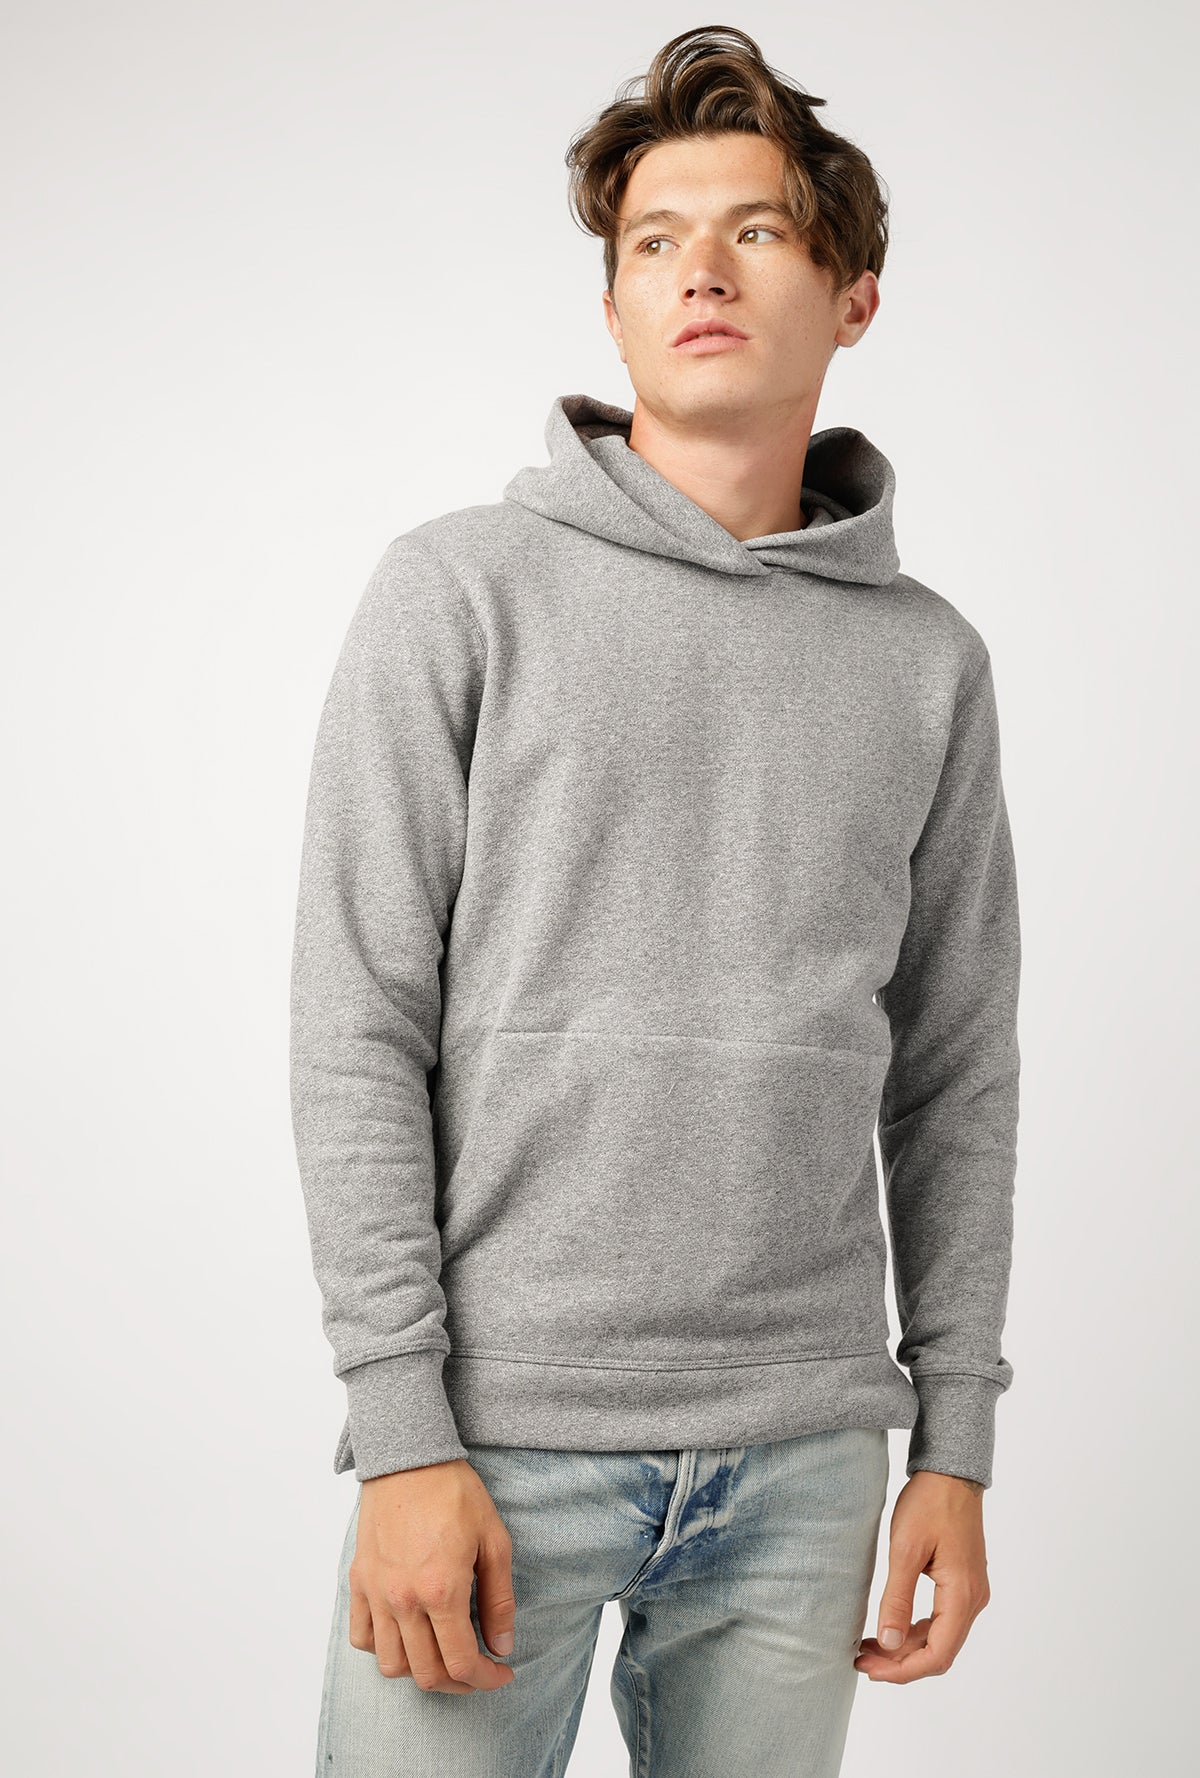 Hooded Villain Sweatshirt